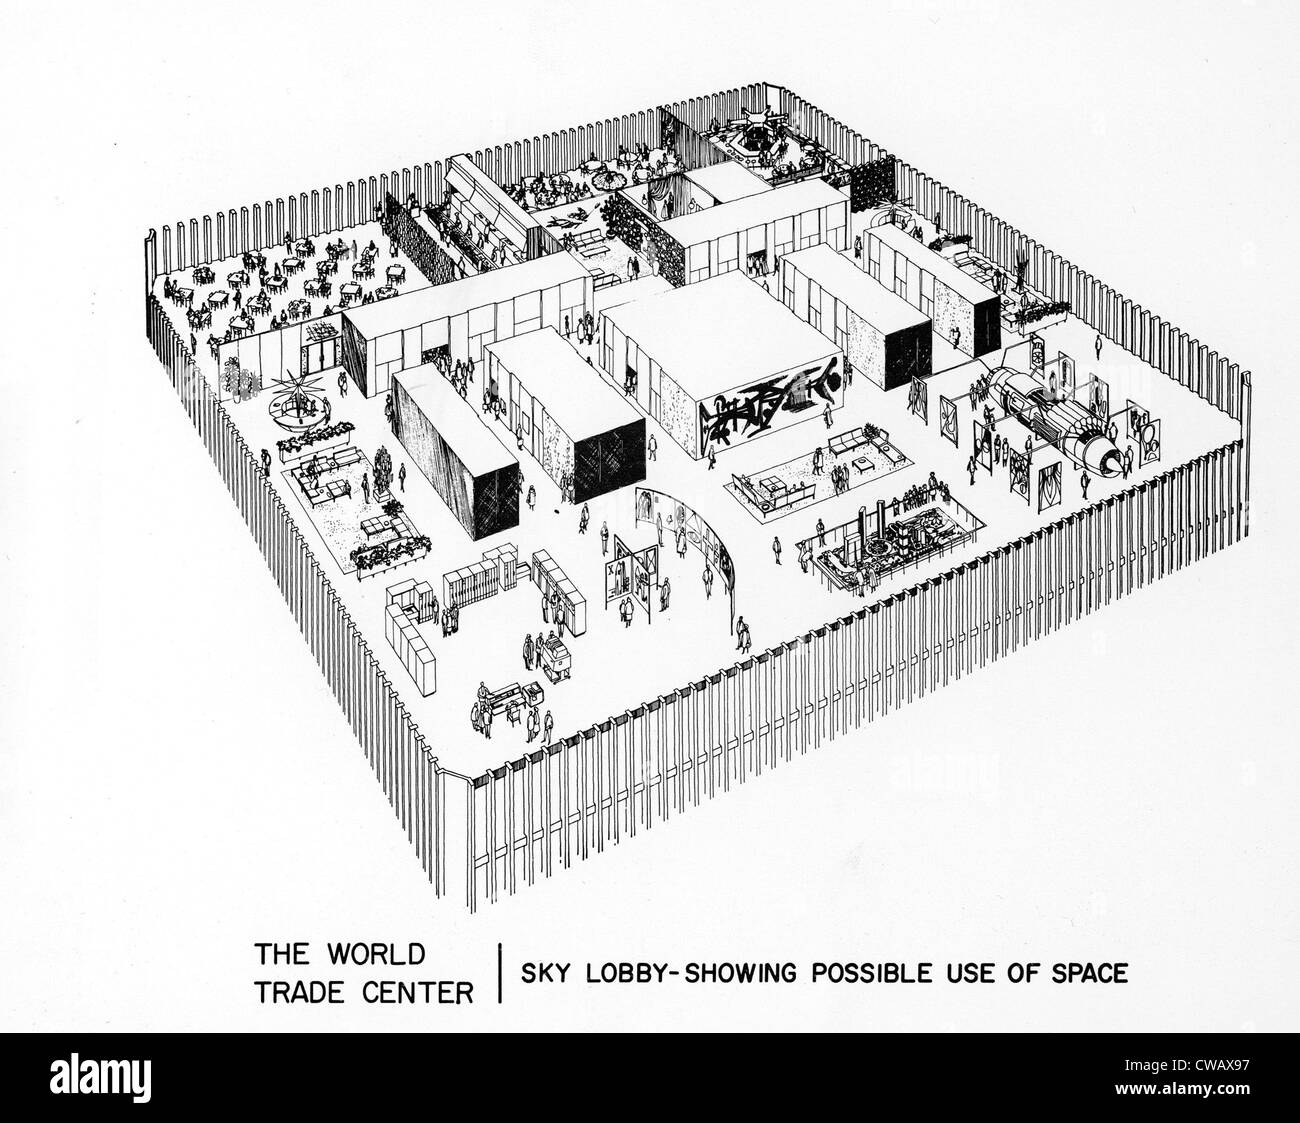 hight resolution of world trade center diagram of proposed use of sky lobby space dated 04 08 67 courtesy csu archives everett collection